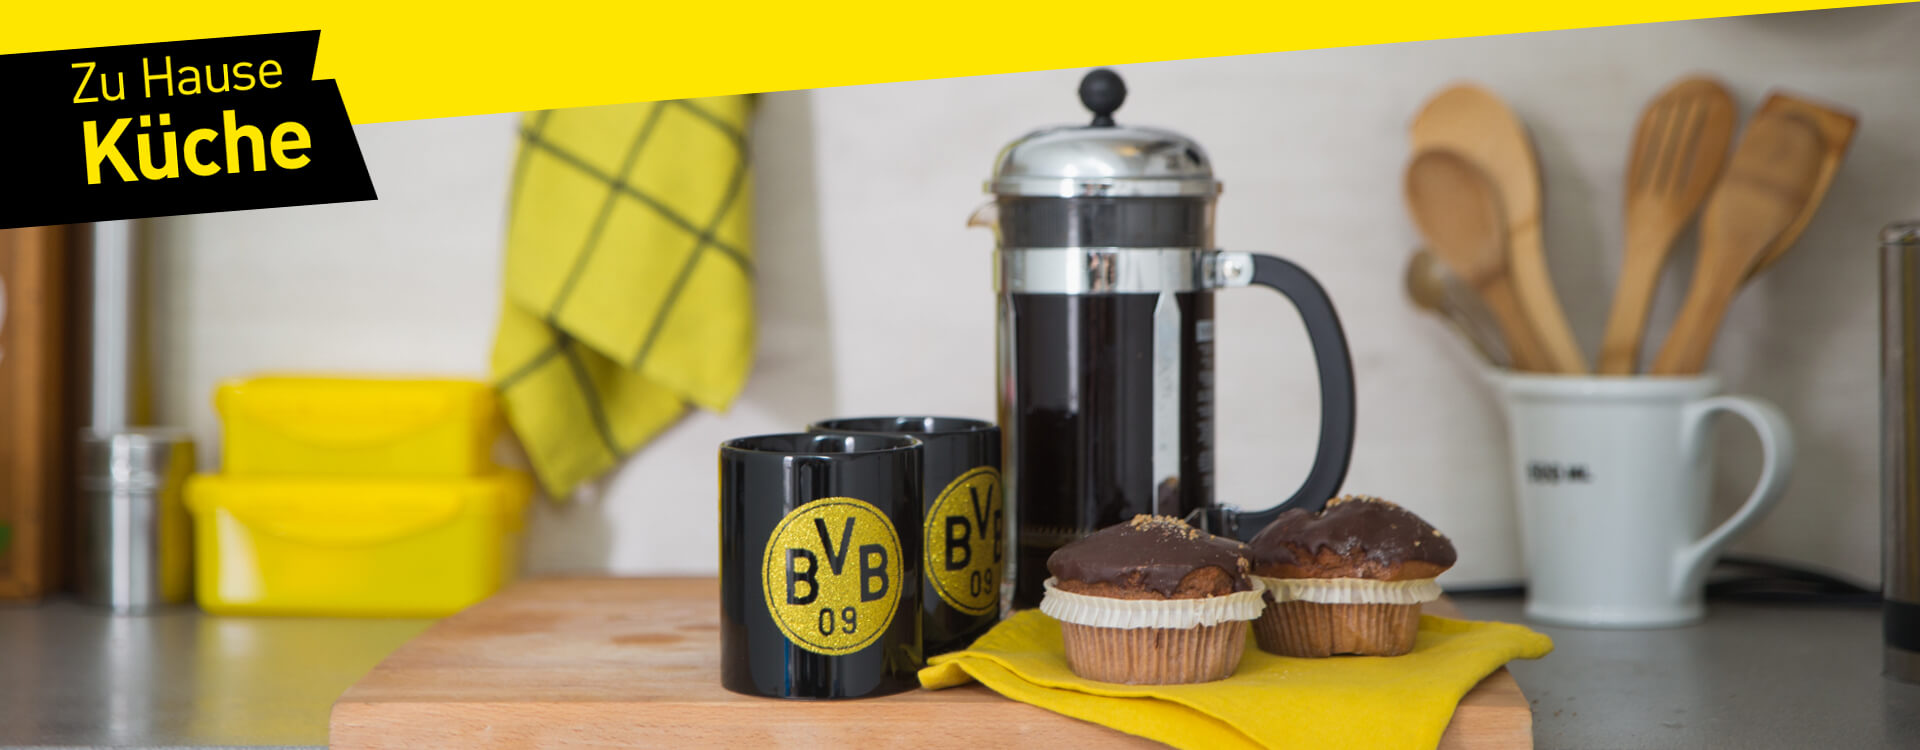 alles f r die k che im offiziellen bvb fanshop offizieller bvb online fanshop. Black Bedroom Furniture Sets. Home Design Ideas